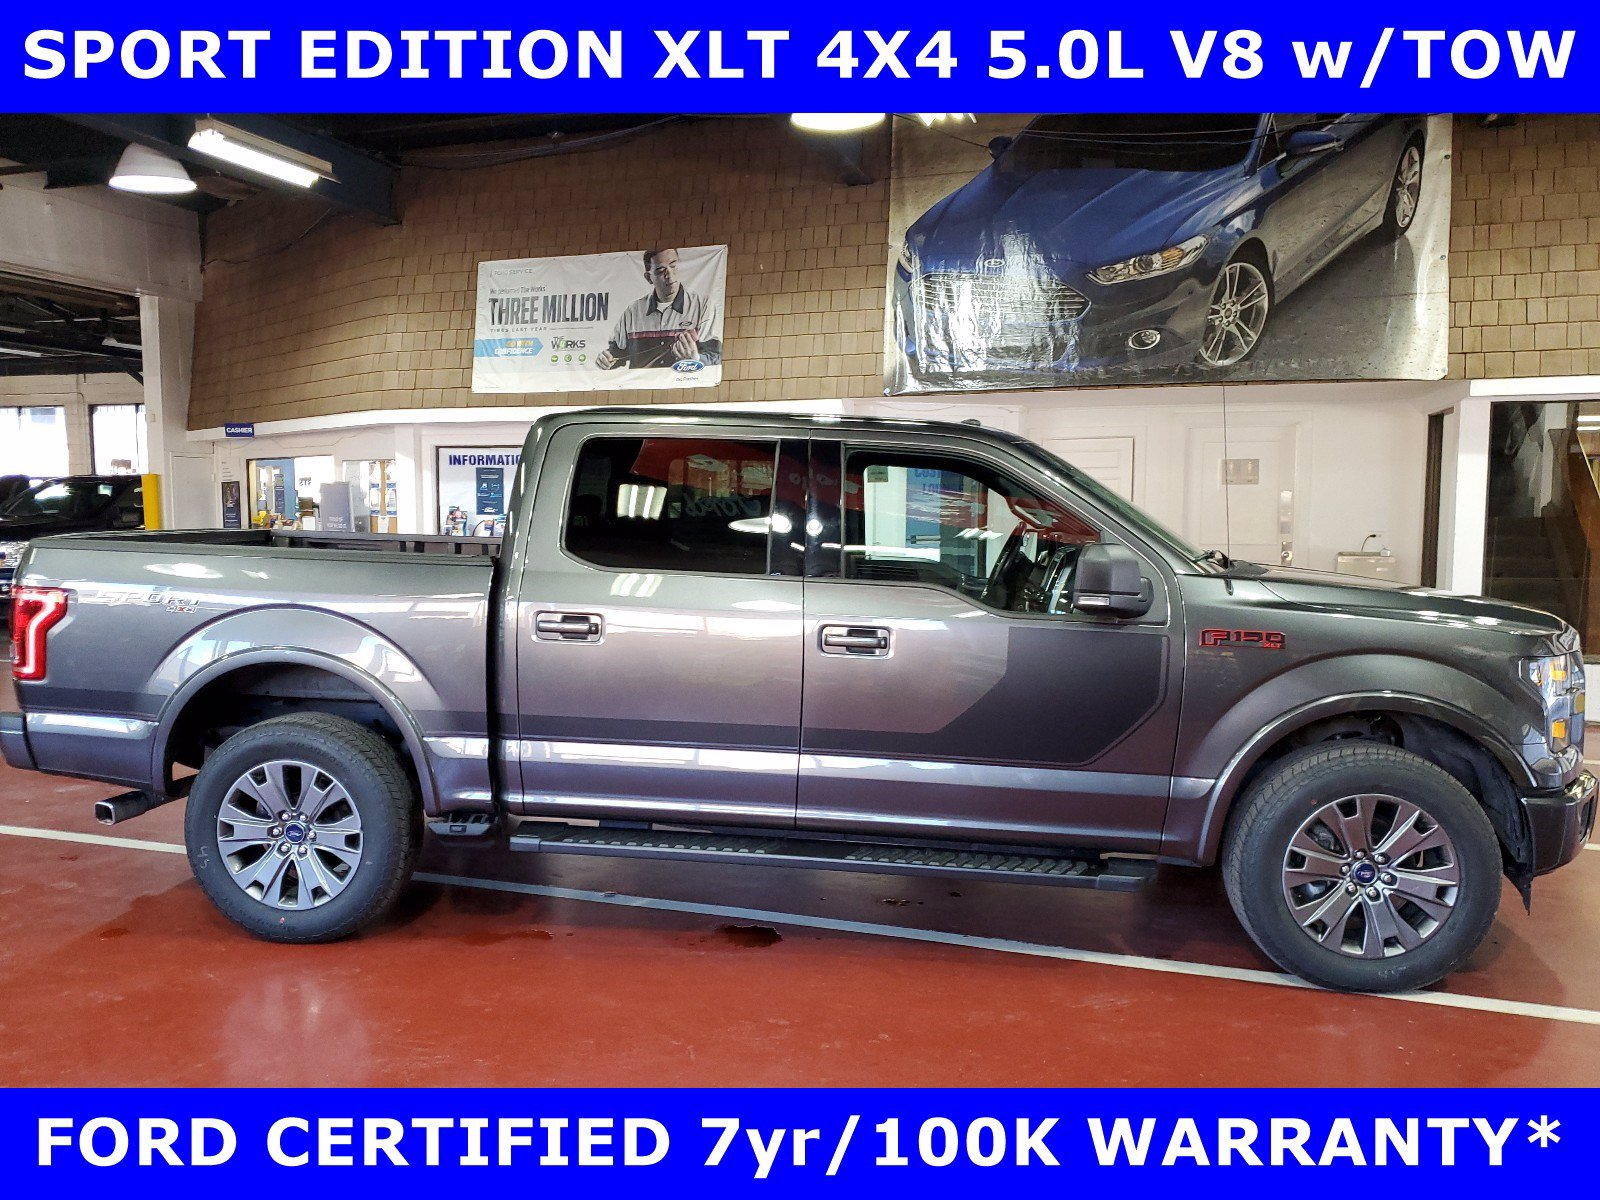 2017 Ford F-150 CERTIFIED SPORT XLT 4X4 5.0L V8 w/BLACK EDITION-TO Truck SuperCrew Cab